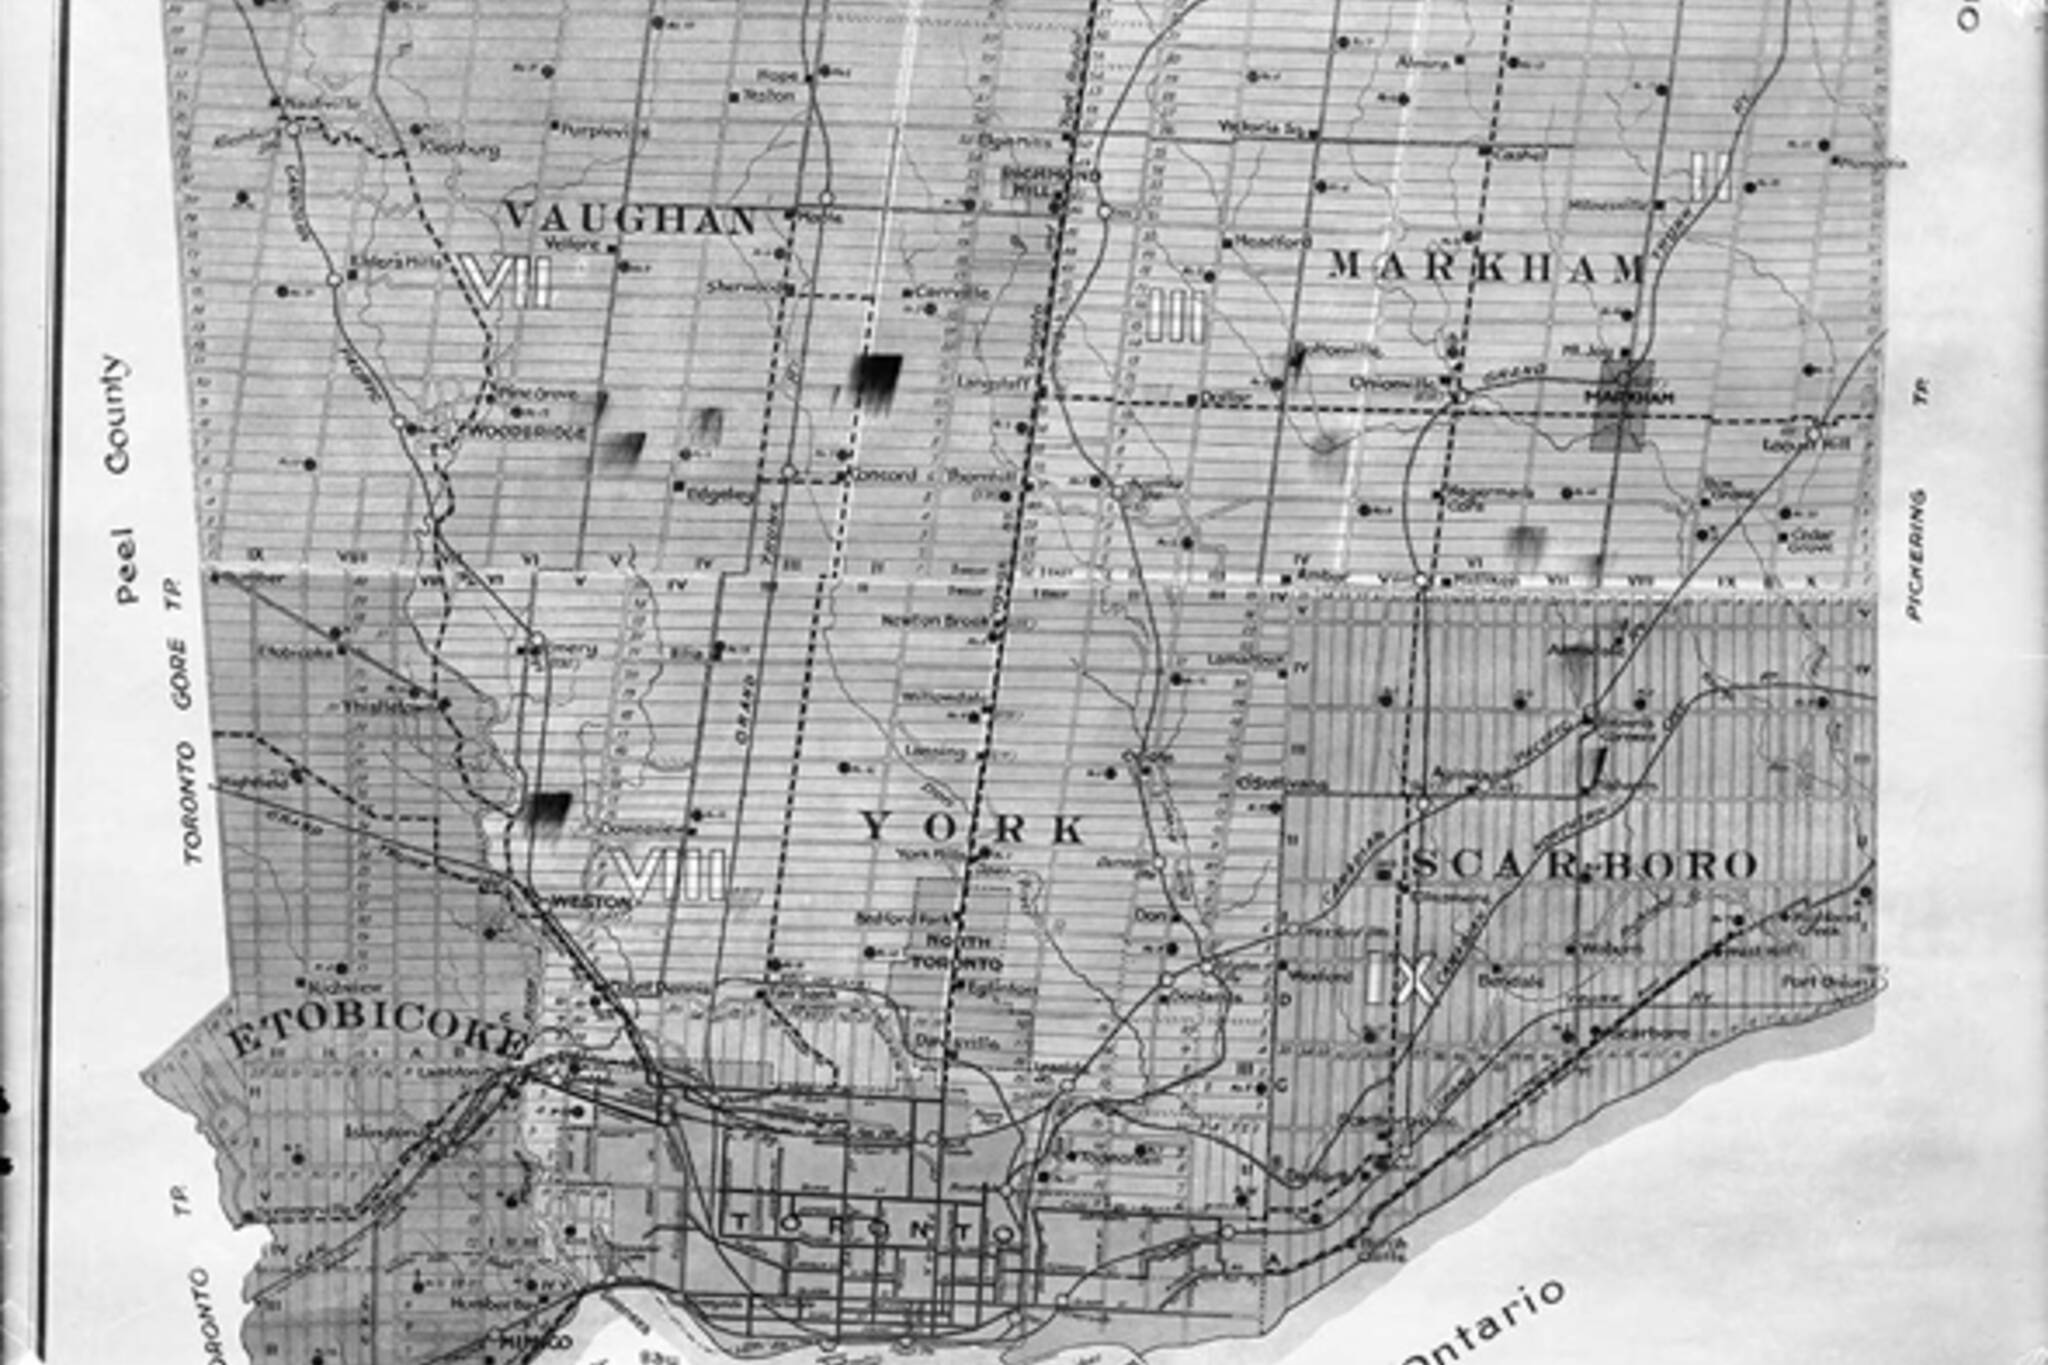 Toronto, history, neighbourhoods, Brockton, Ellesmere, Scarborough, postwar, suburbs, York County